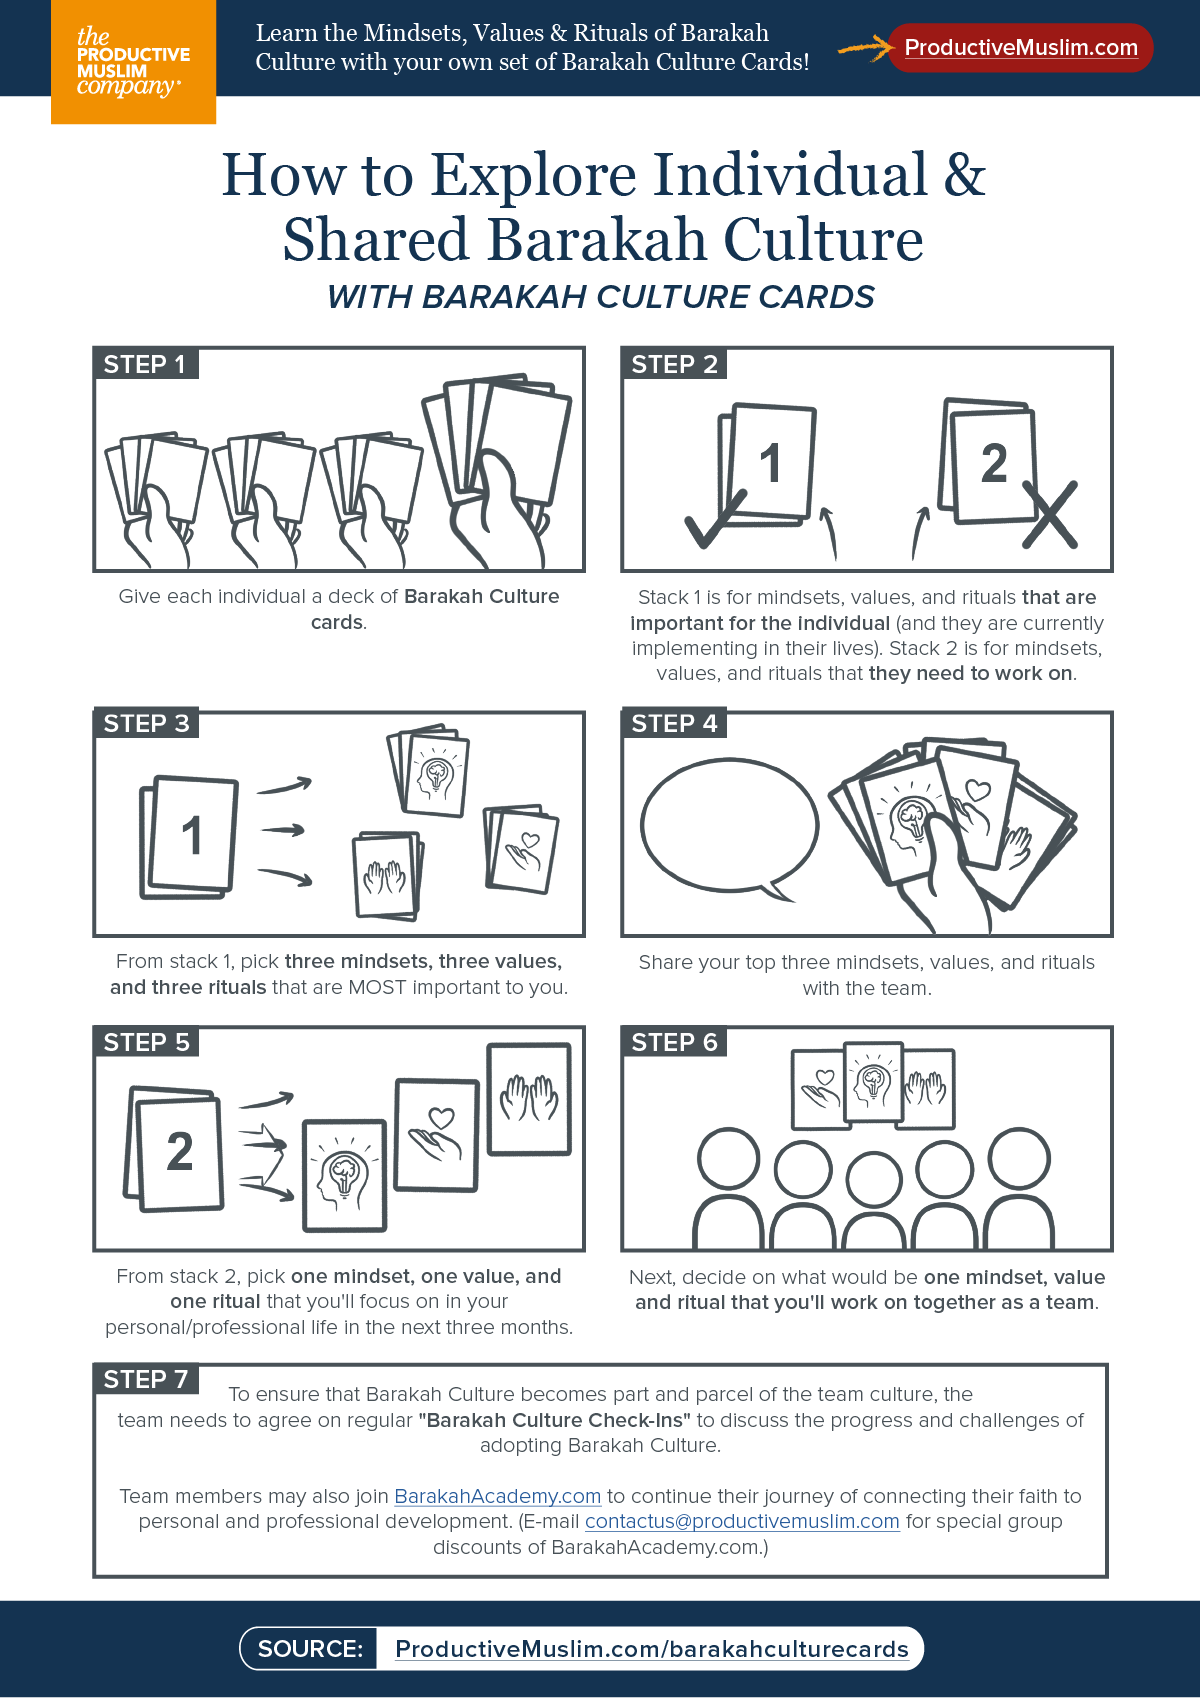 barakah-cards-implement